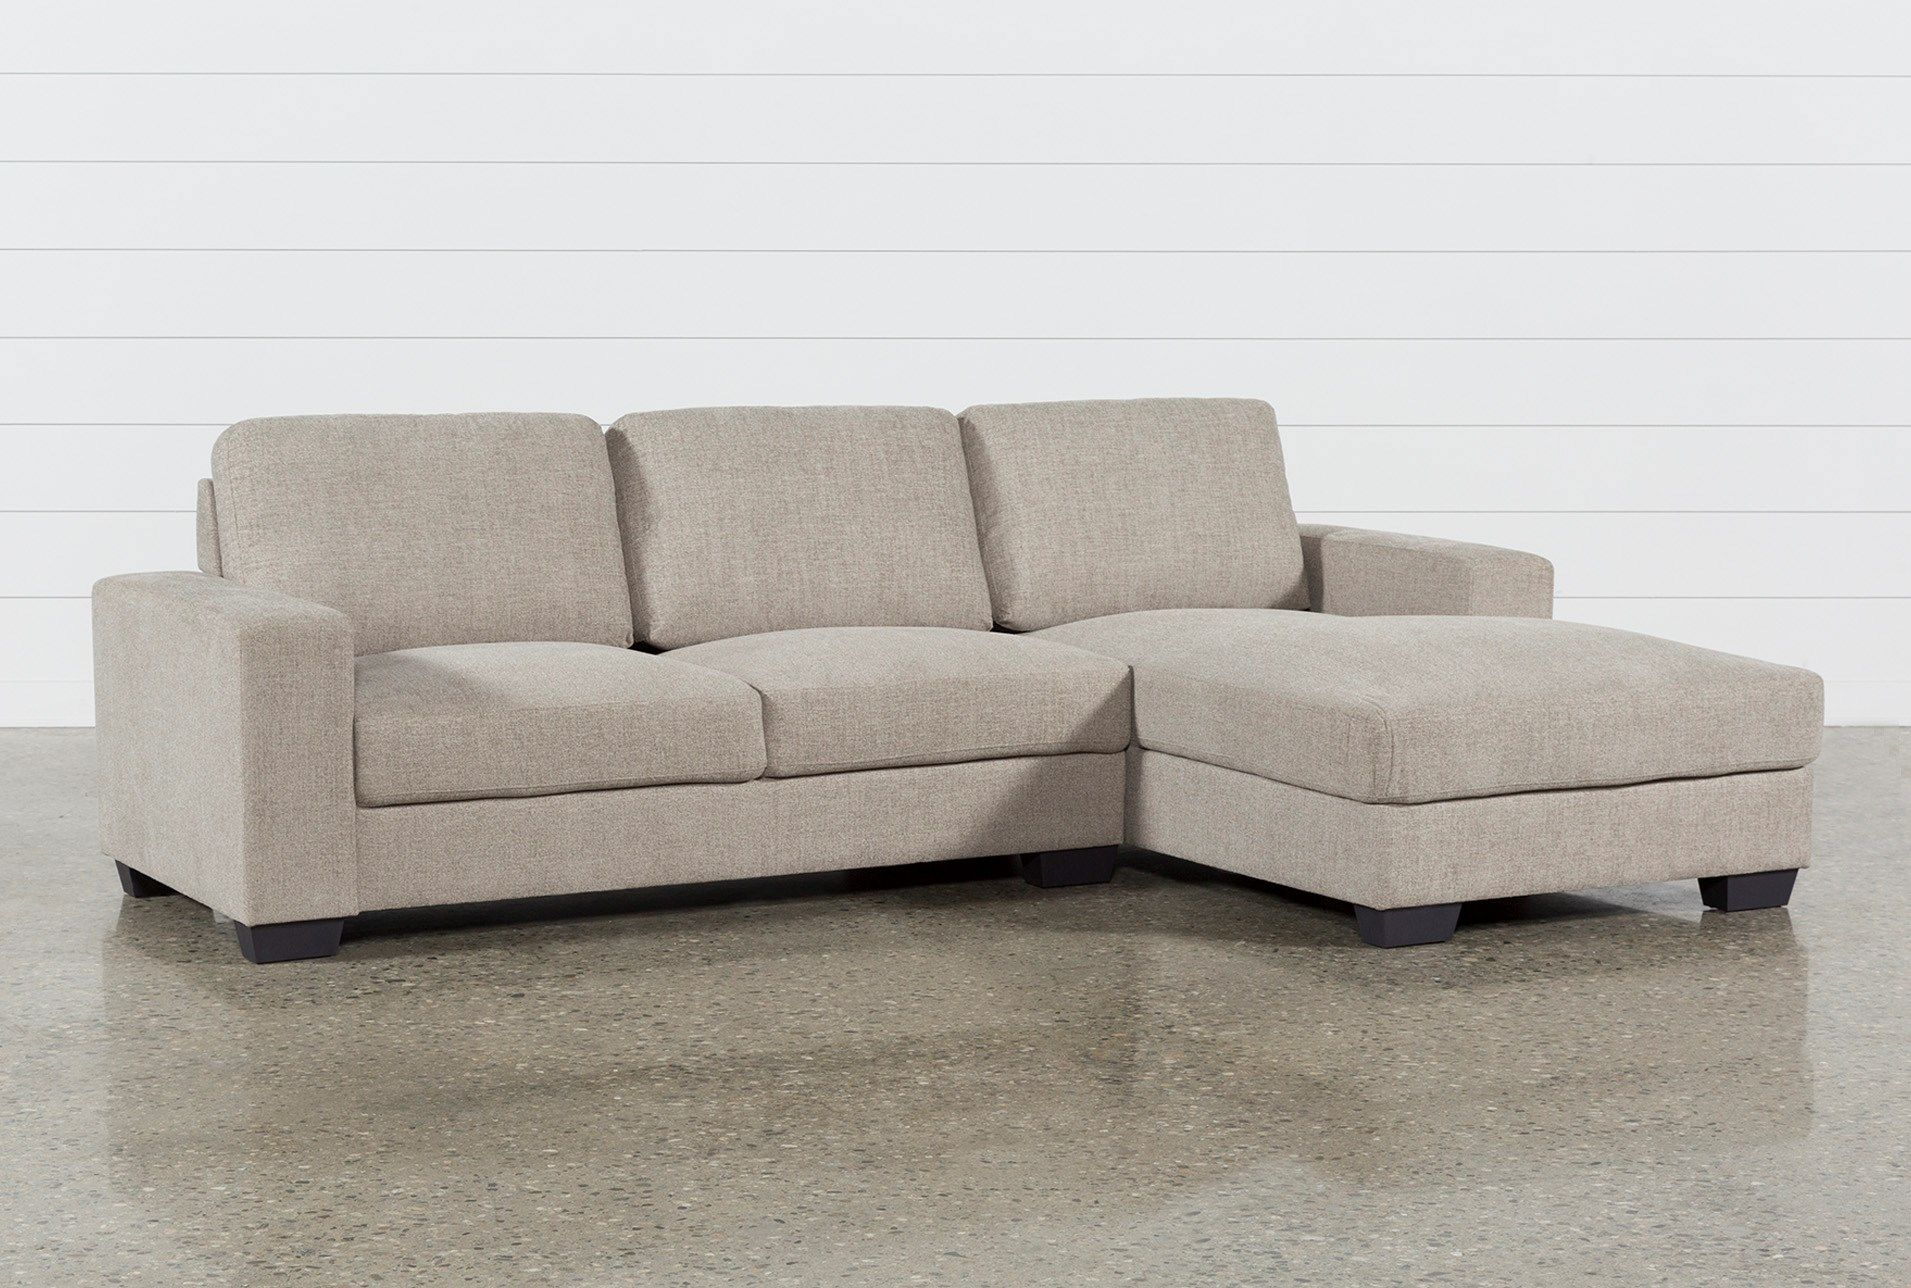 Peachy Designs Like Our Jobs Oat 2 Piece Sectional Let You Stretch Pabps2019 Chair Design Images Pabps2019Com